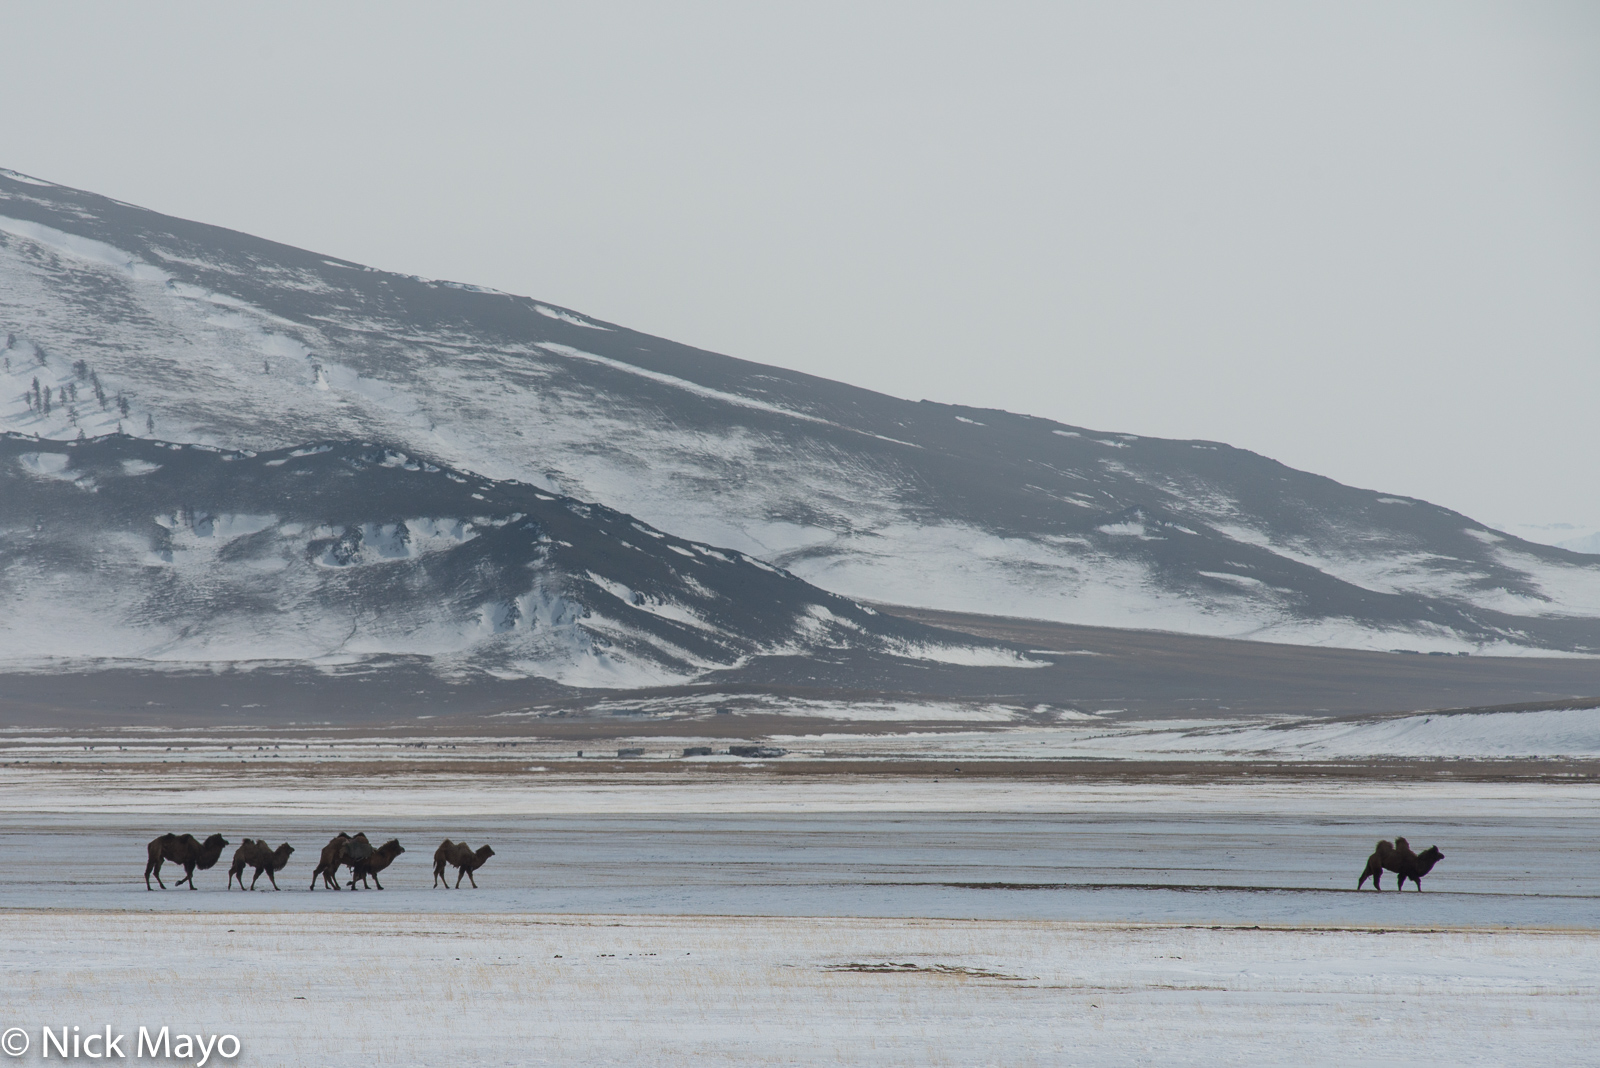 Bayan-Ölgii, Camel, Mongolia, photo